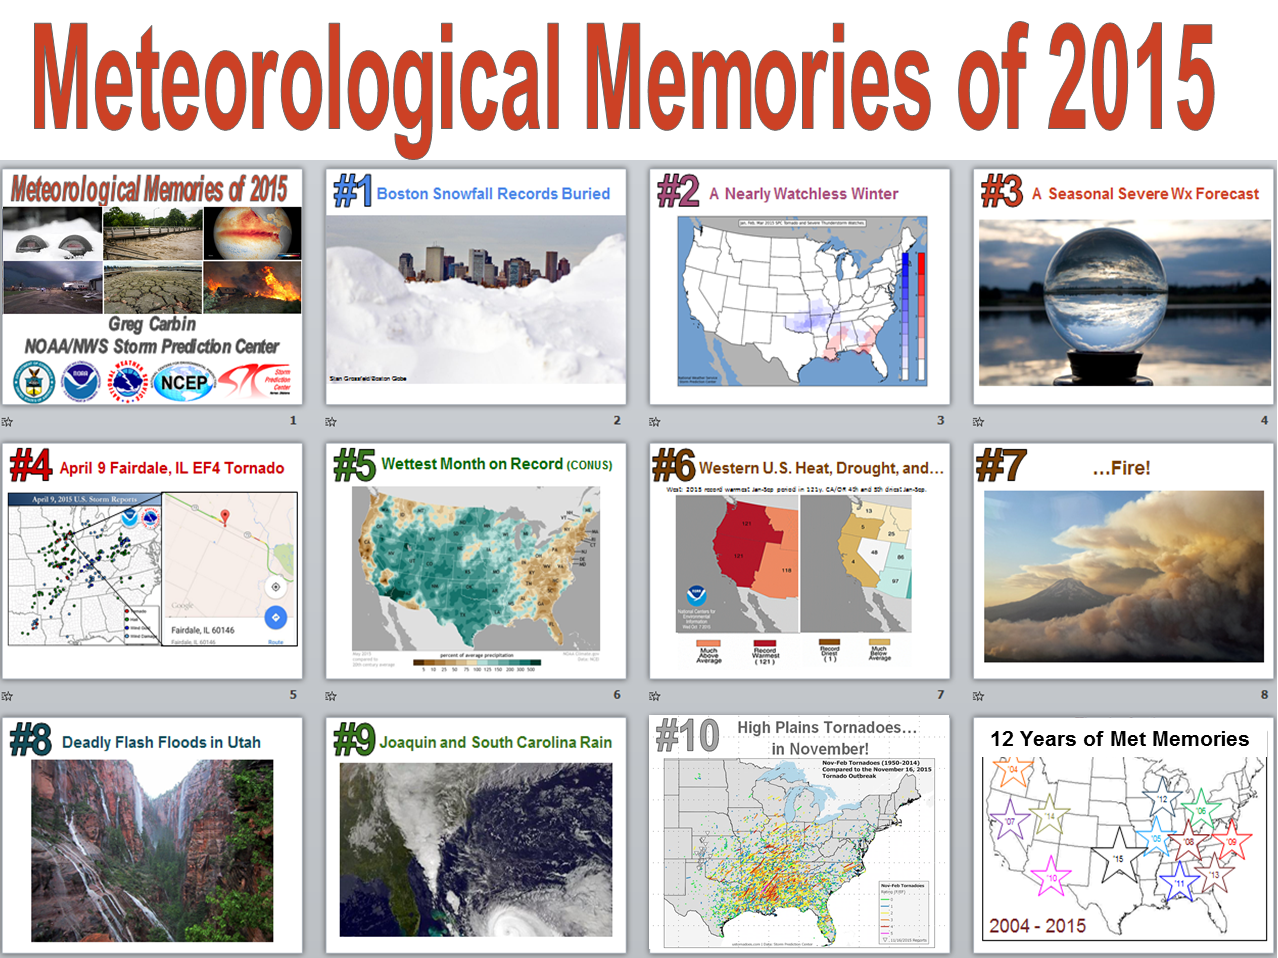 Top 10 Biggest Weather Events for 2015 by Greg Carbin